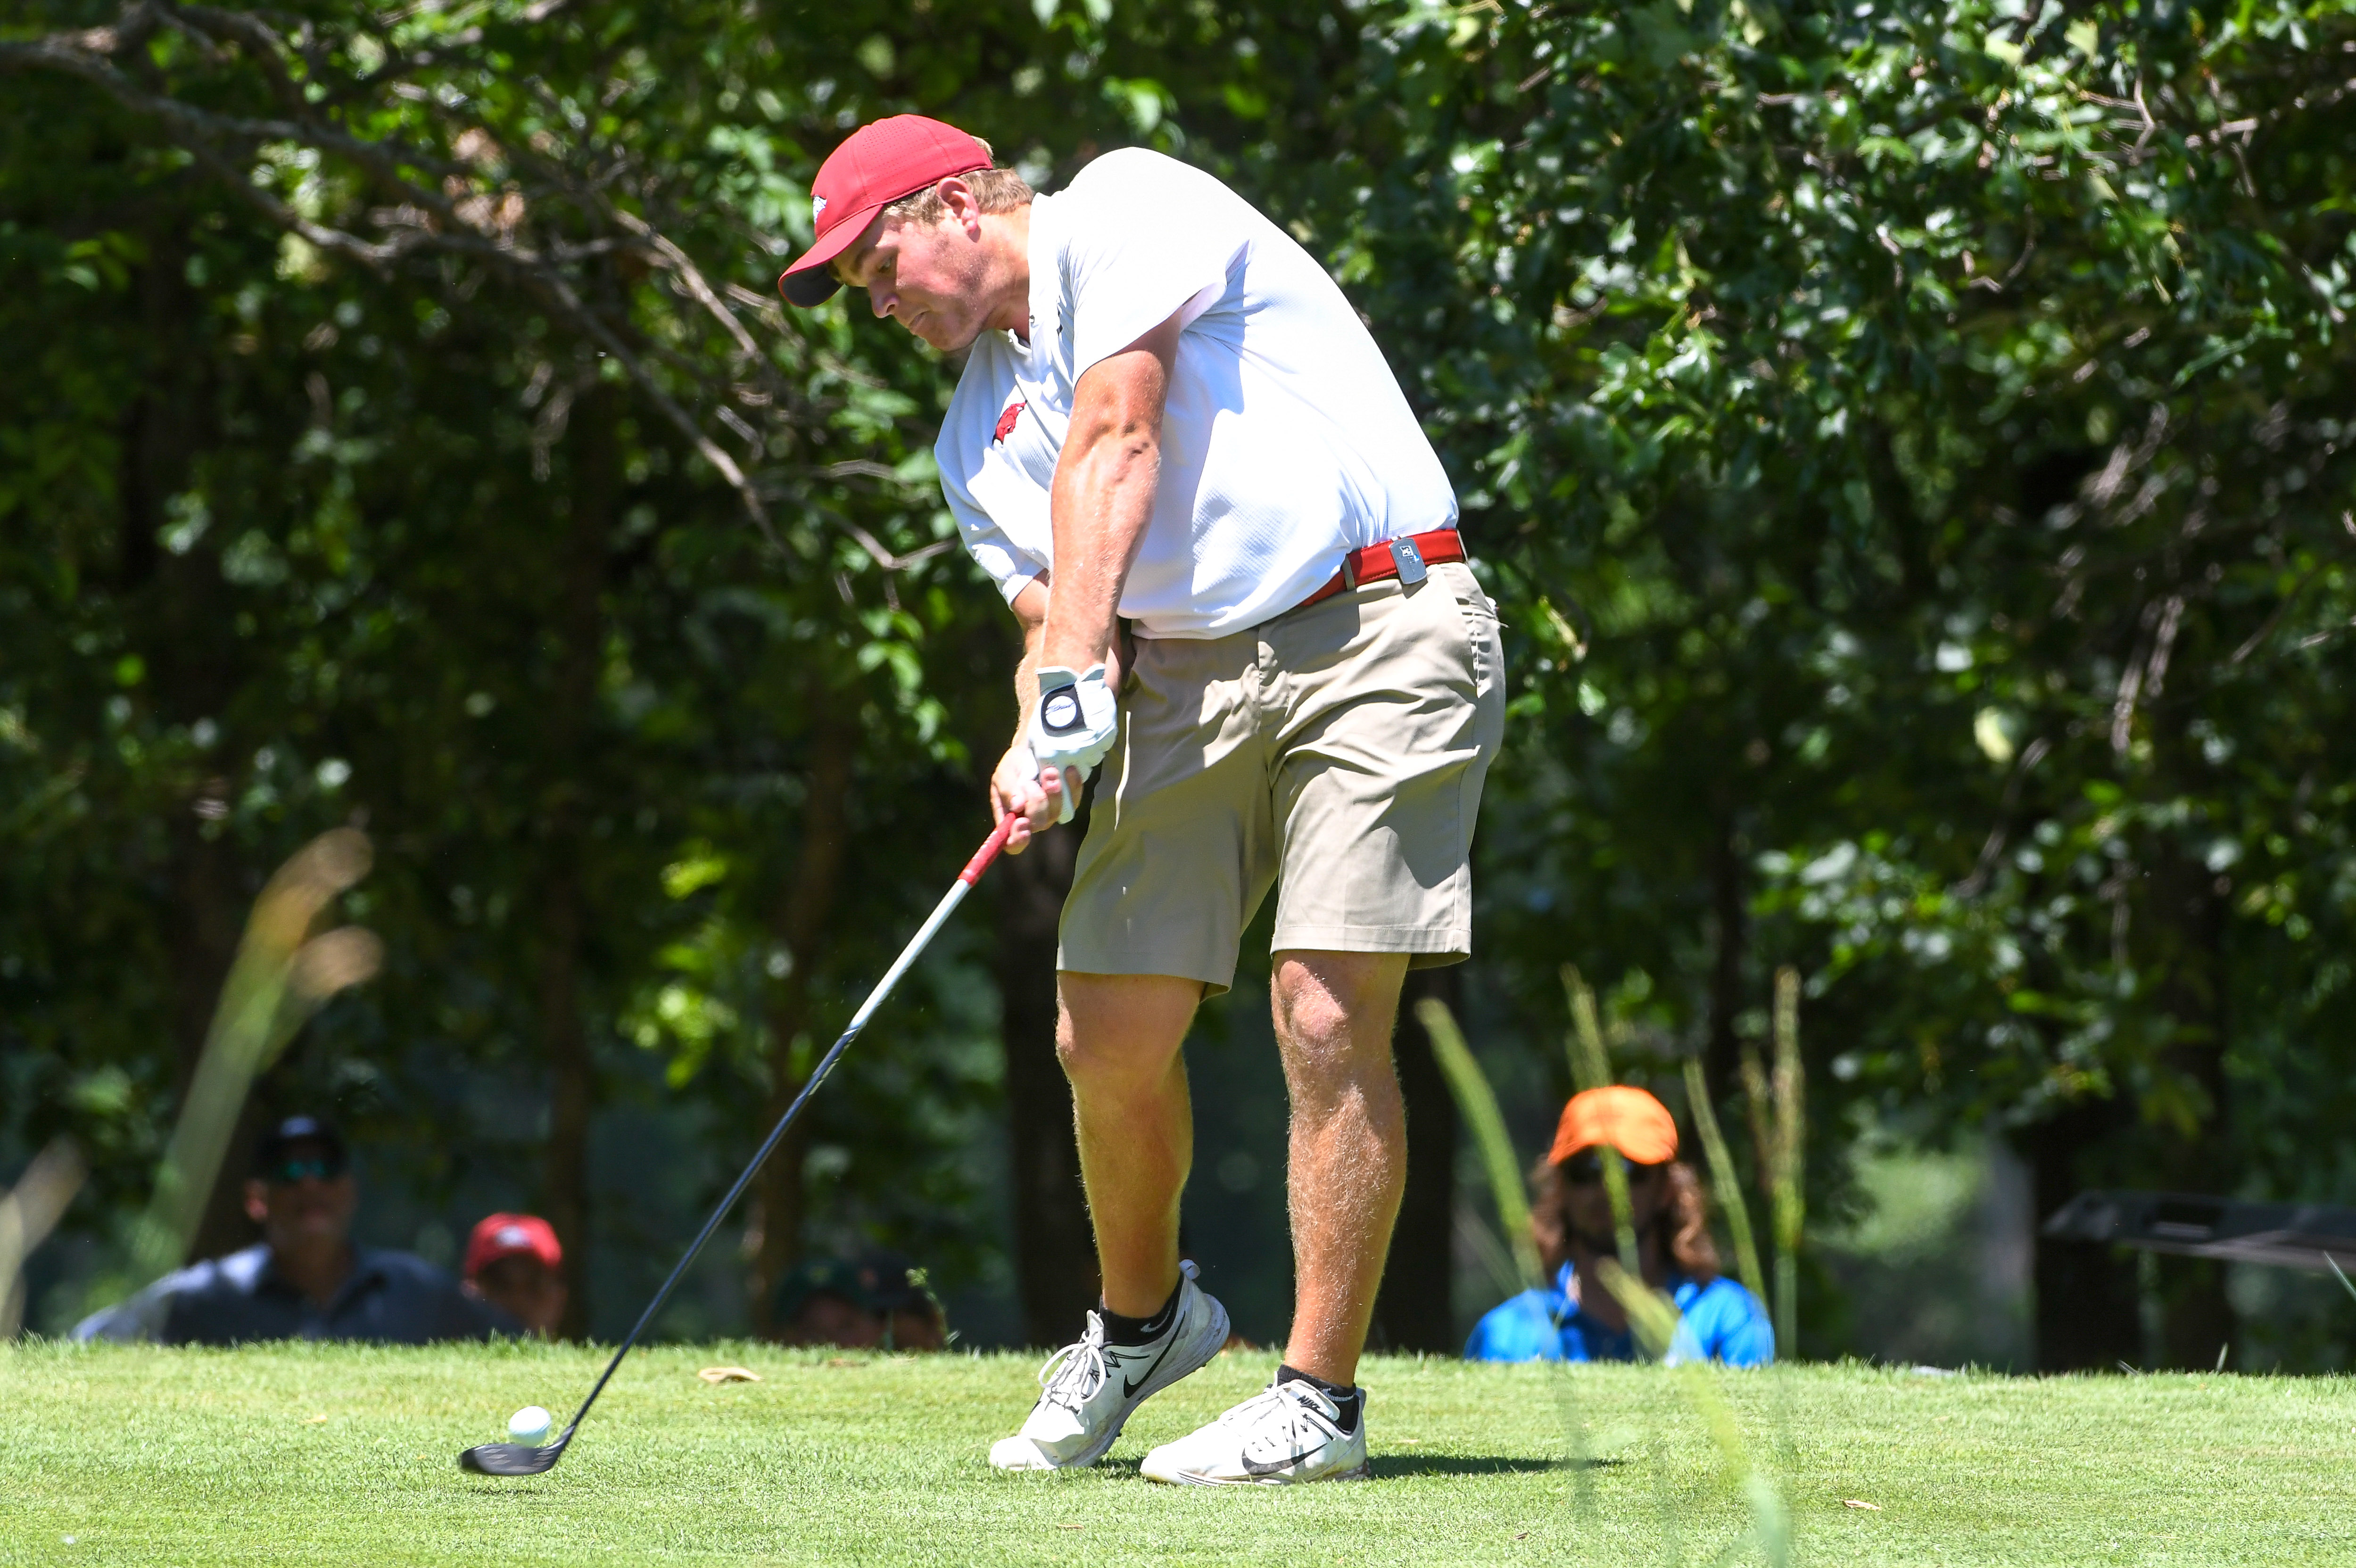 Mason Overstreet in 19th Sun Bowl All-America Golf Classic